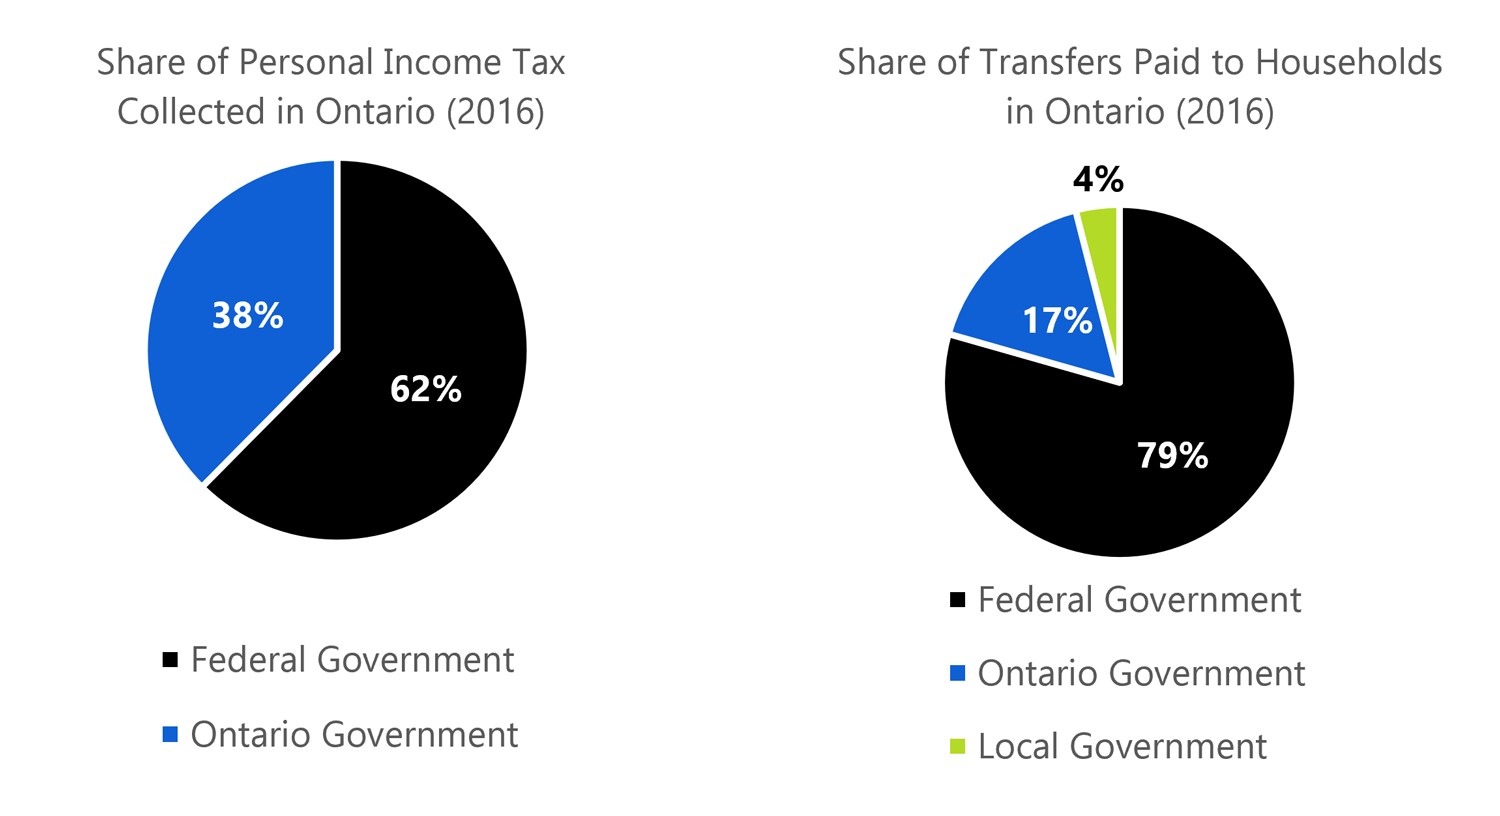 1.5 Ontario Government plays a smaller, but key role in the tax and transfer system